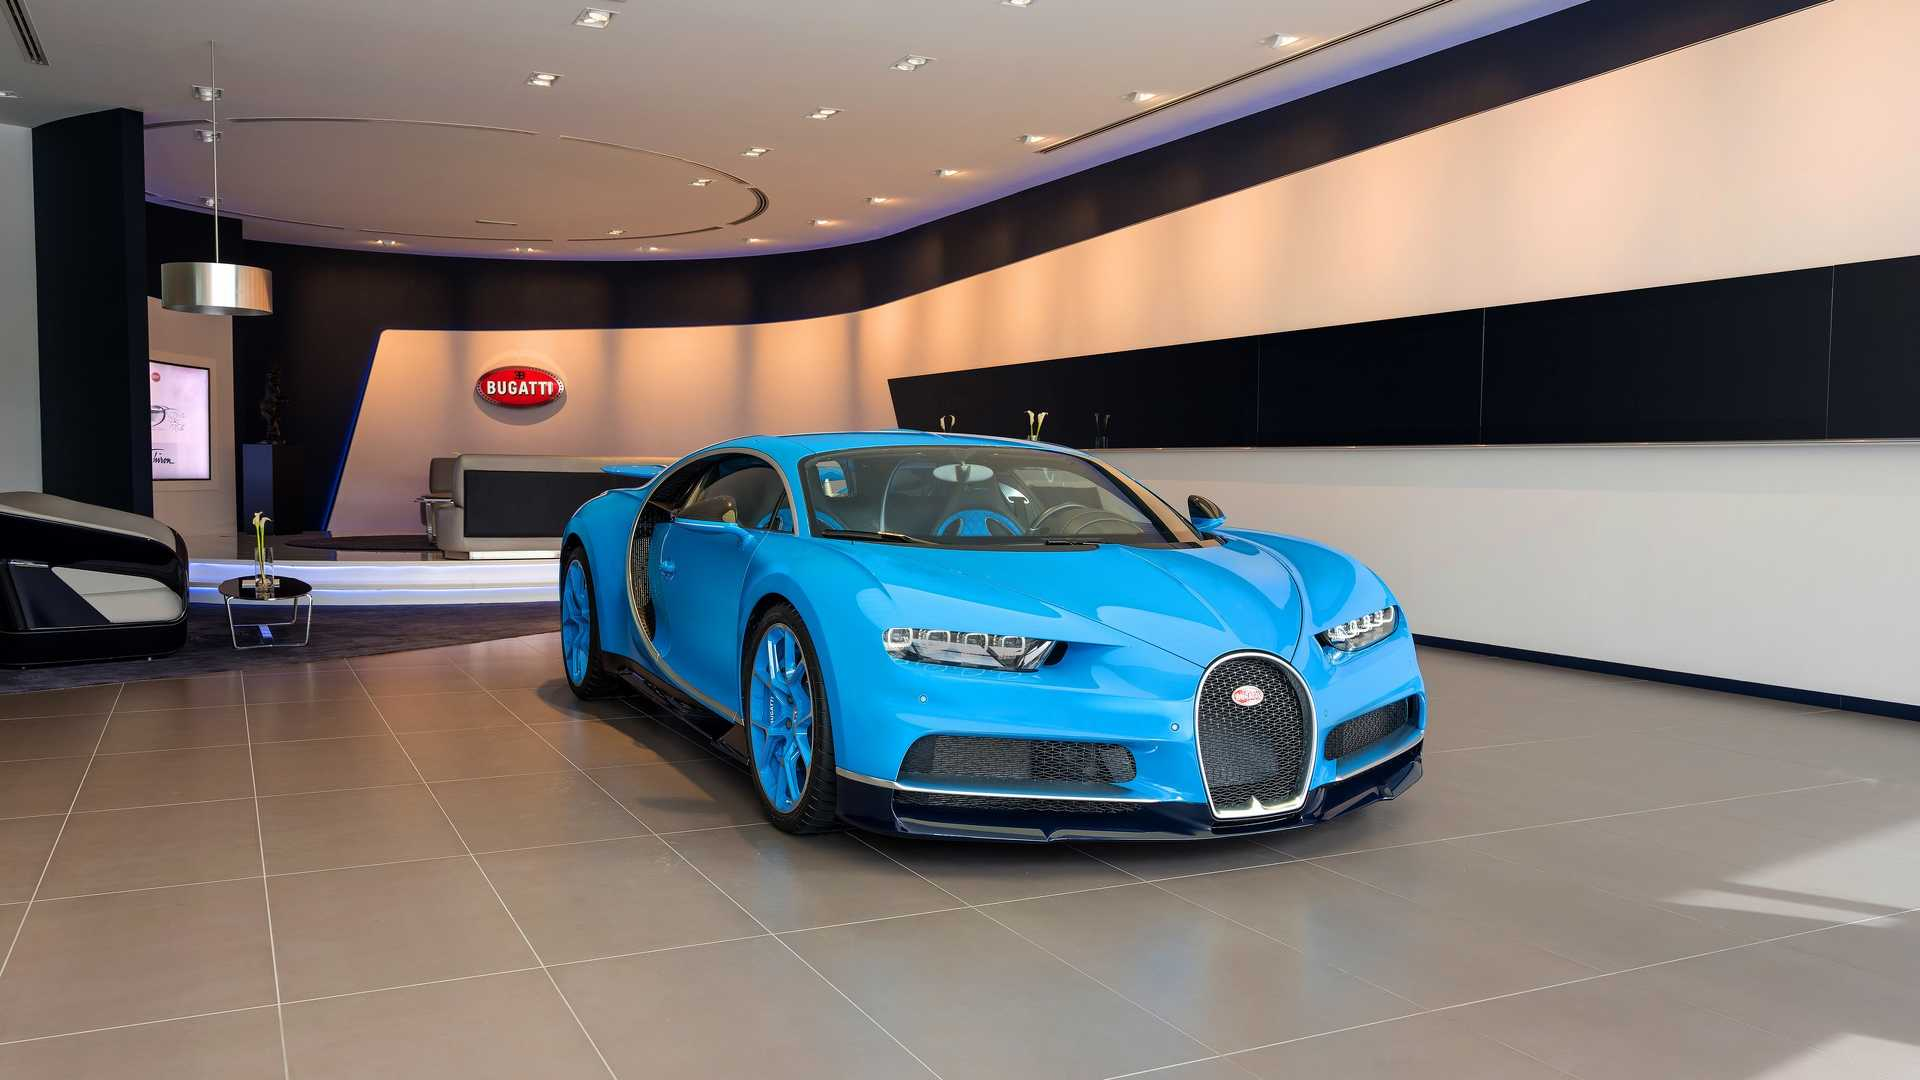 Closest bugatti dealership